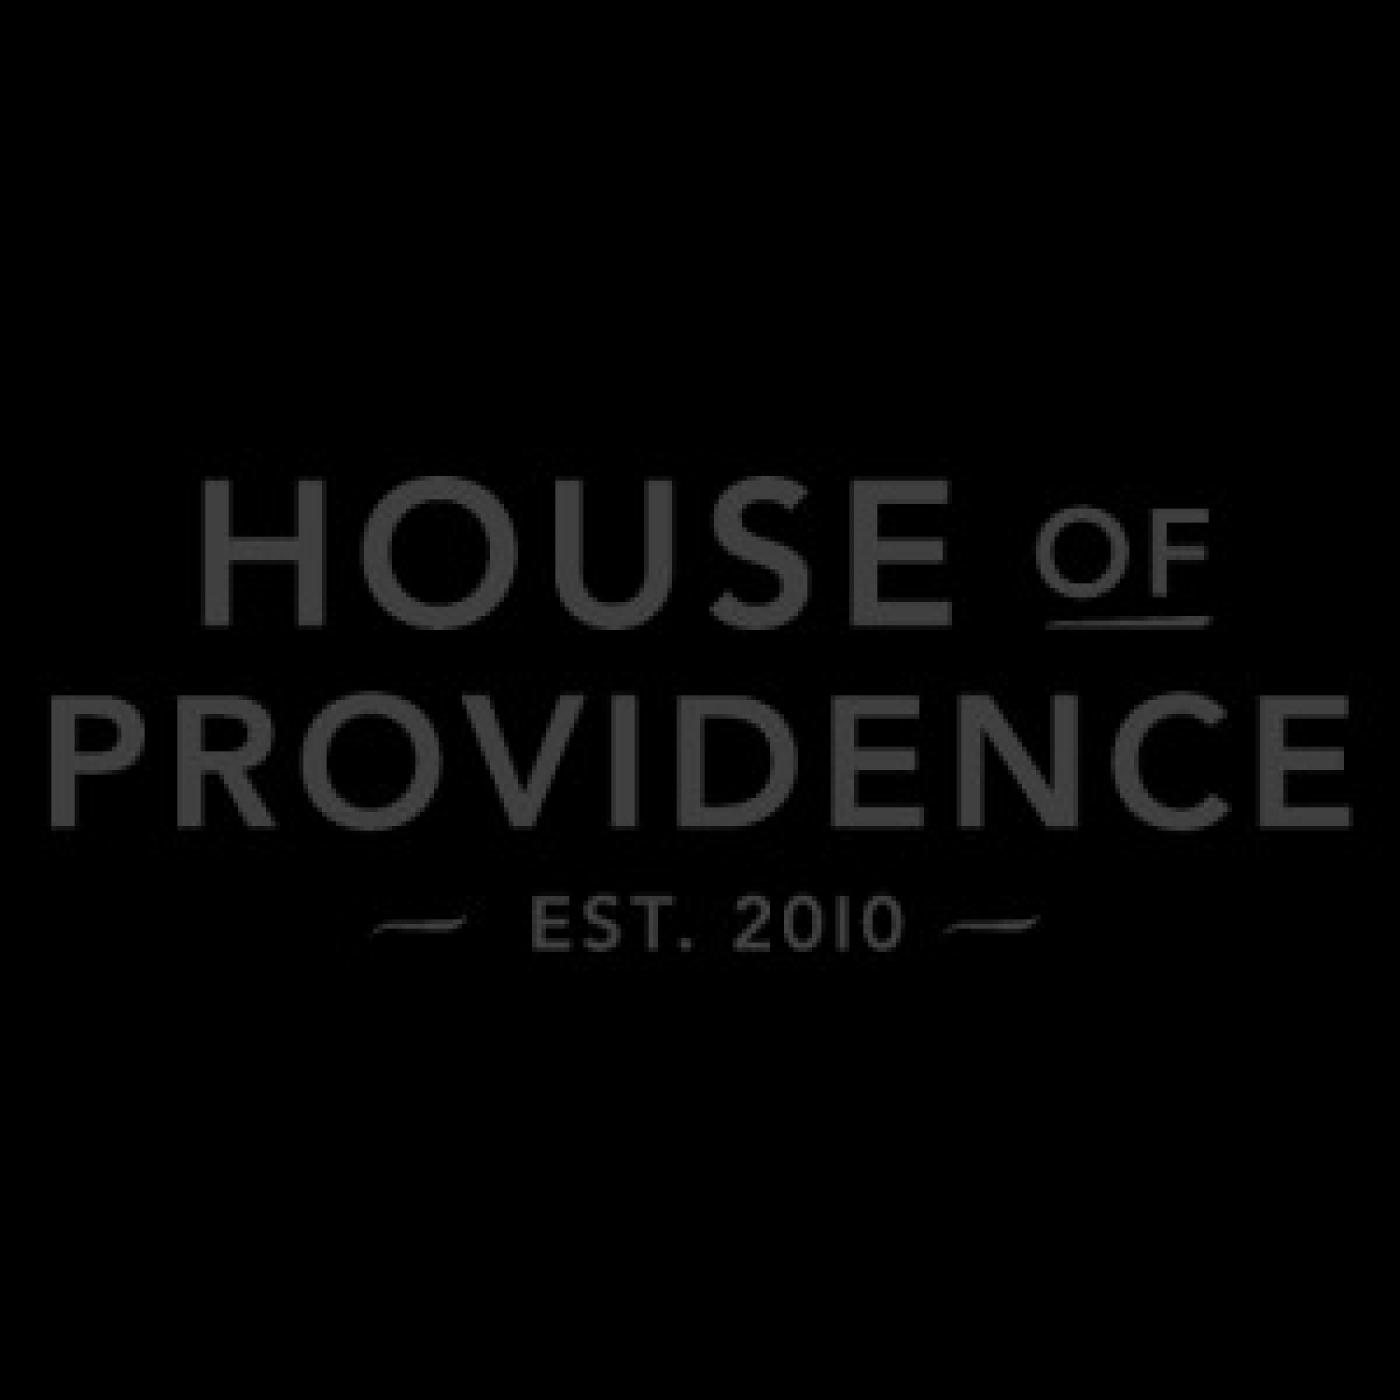 House of Providence Sermons